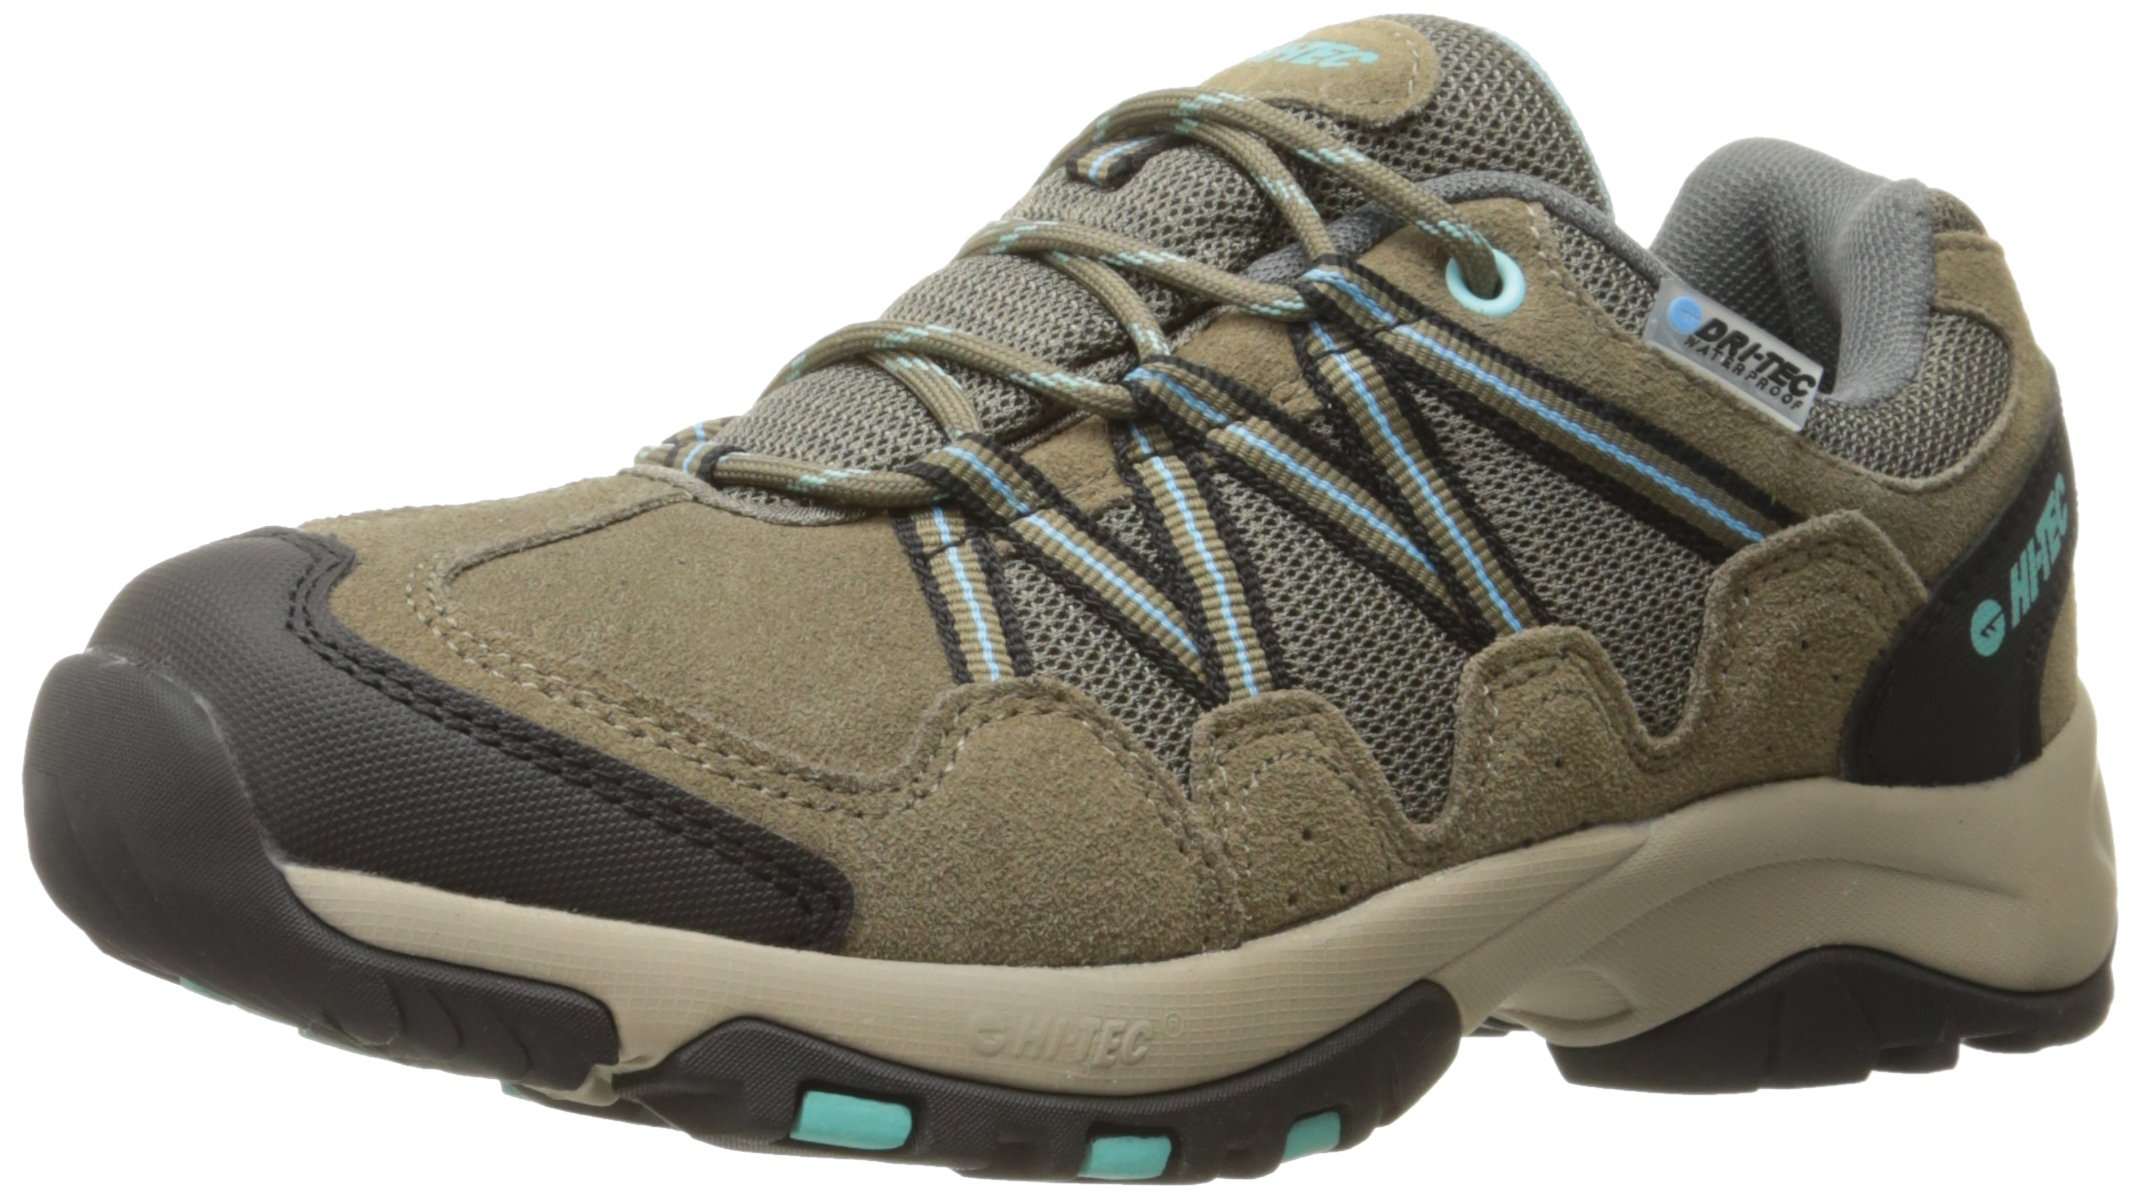 Hi-Tec Women's Florence Low Waterproof Multisport Shoe, Taupe/Mint, 9.5 M US